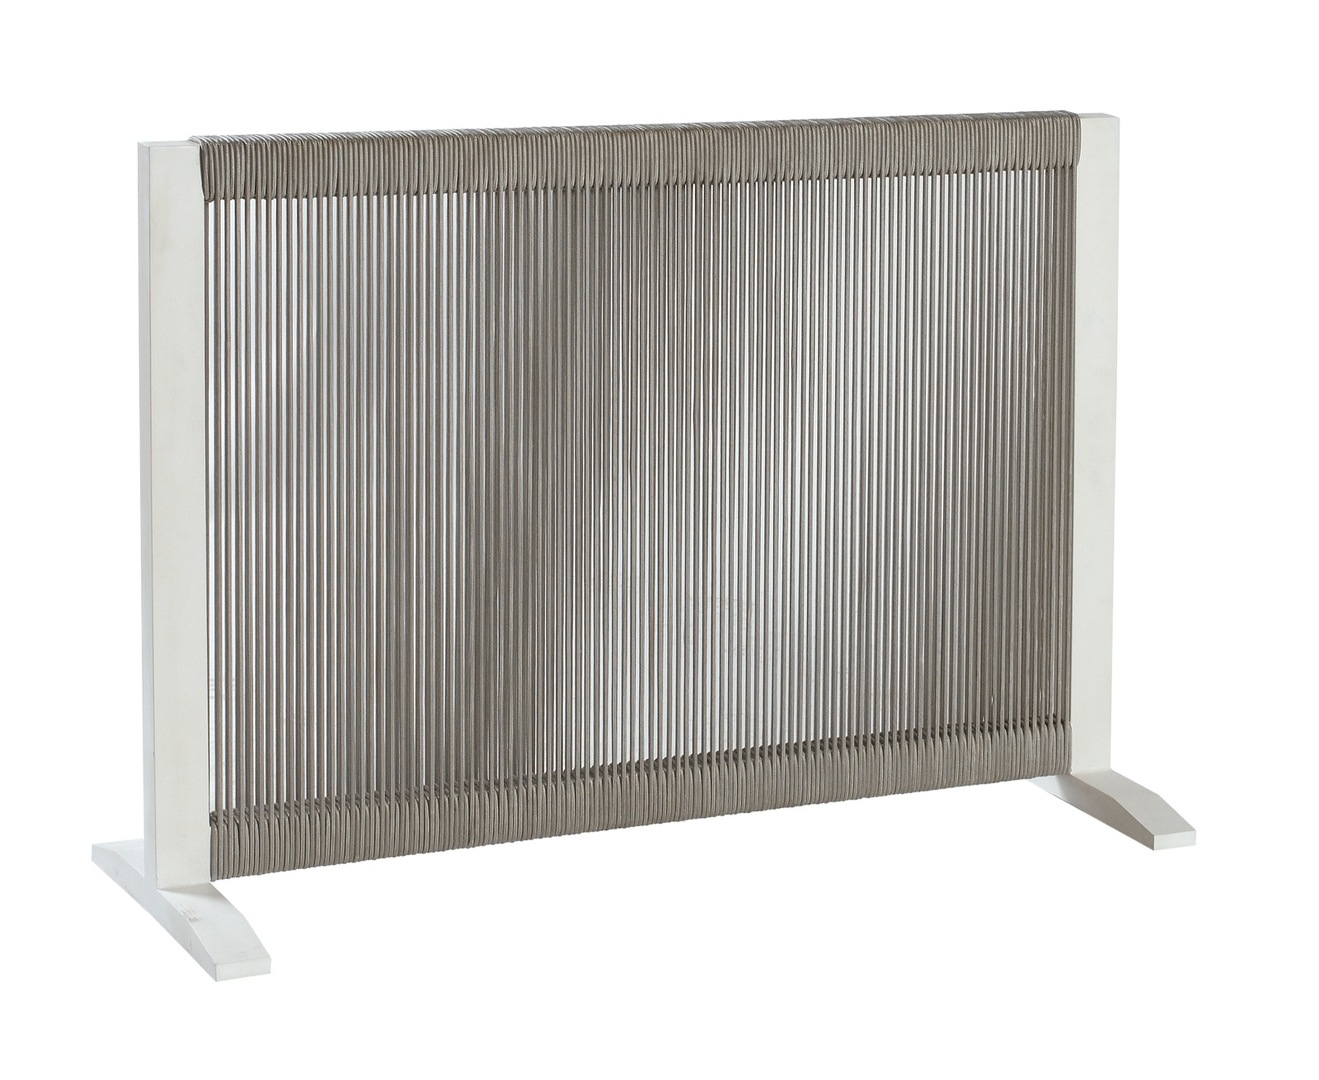 Borek 2013 Rope Ponza room divider 2-1_preview.jpg